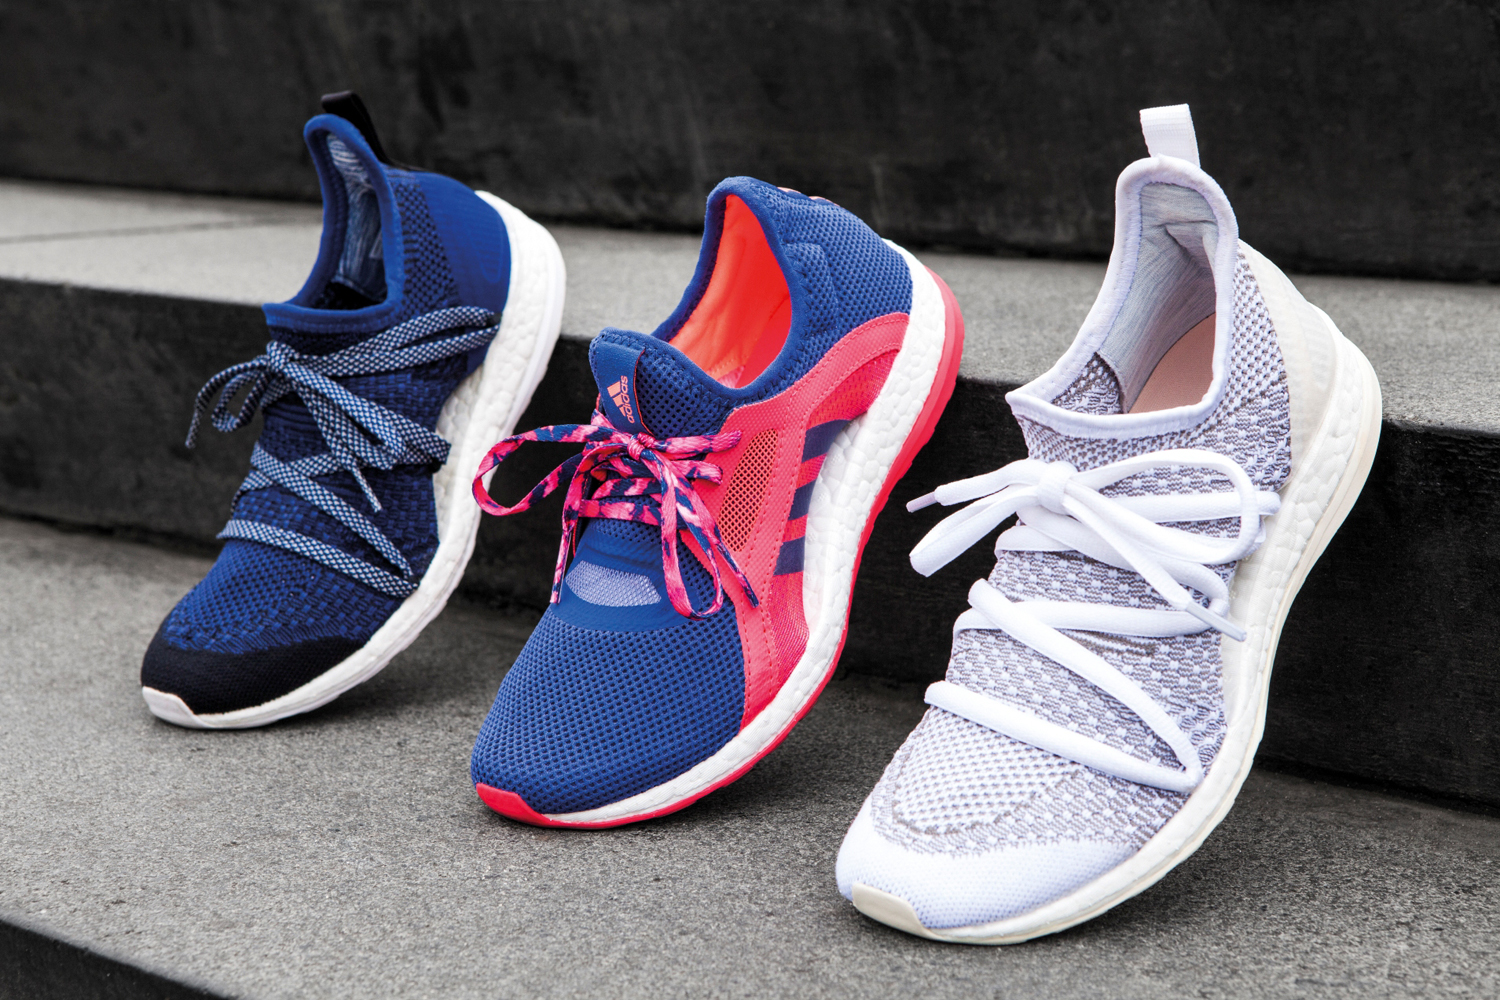 stella mccartney pure boost adidas trainers